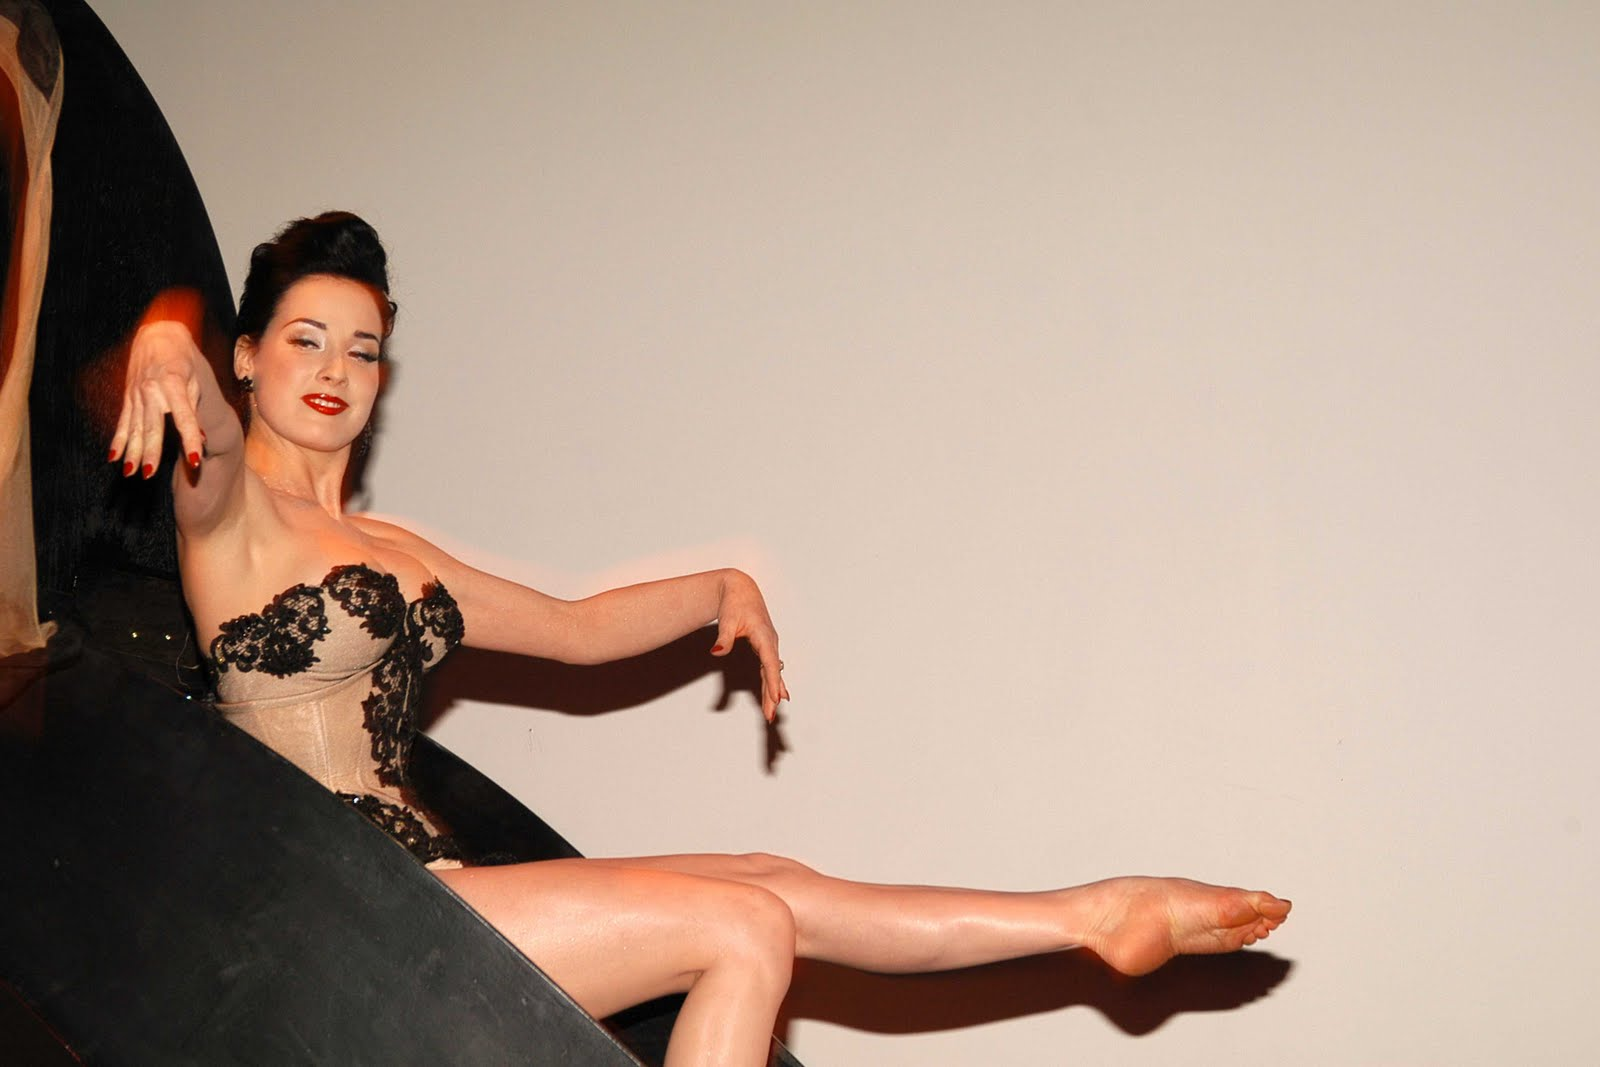 Toes Dita Von Teese Barefoot And Shoes Dita Von Teese Is A Stunningly